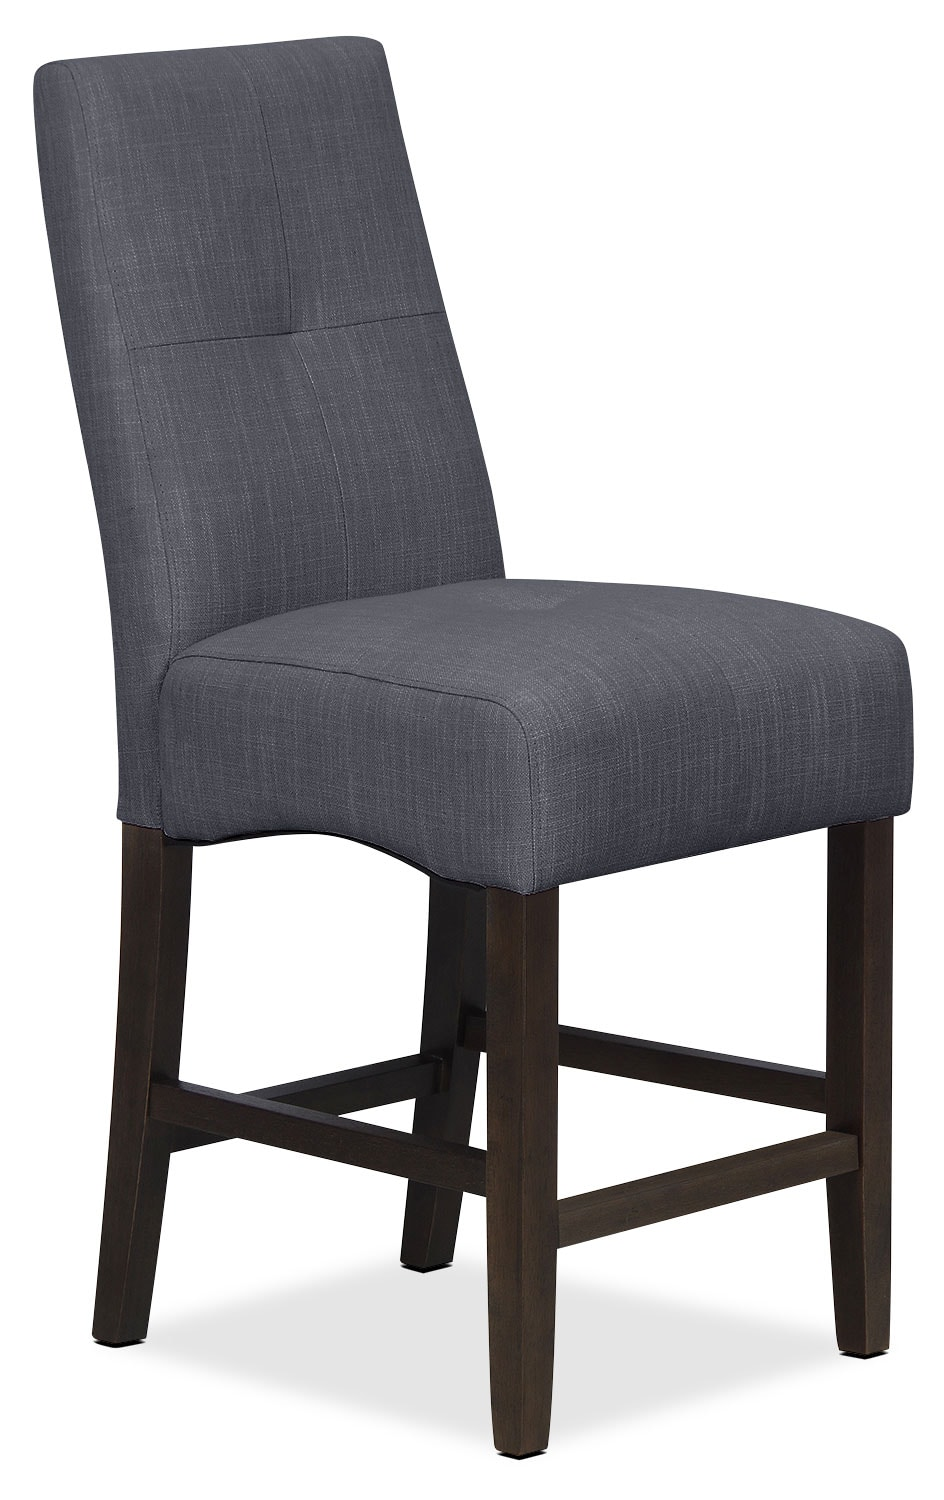 Soho Counter-Height Dining Chair – Charcoal